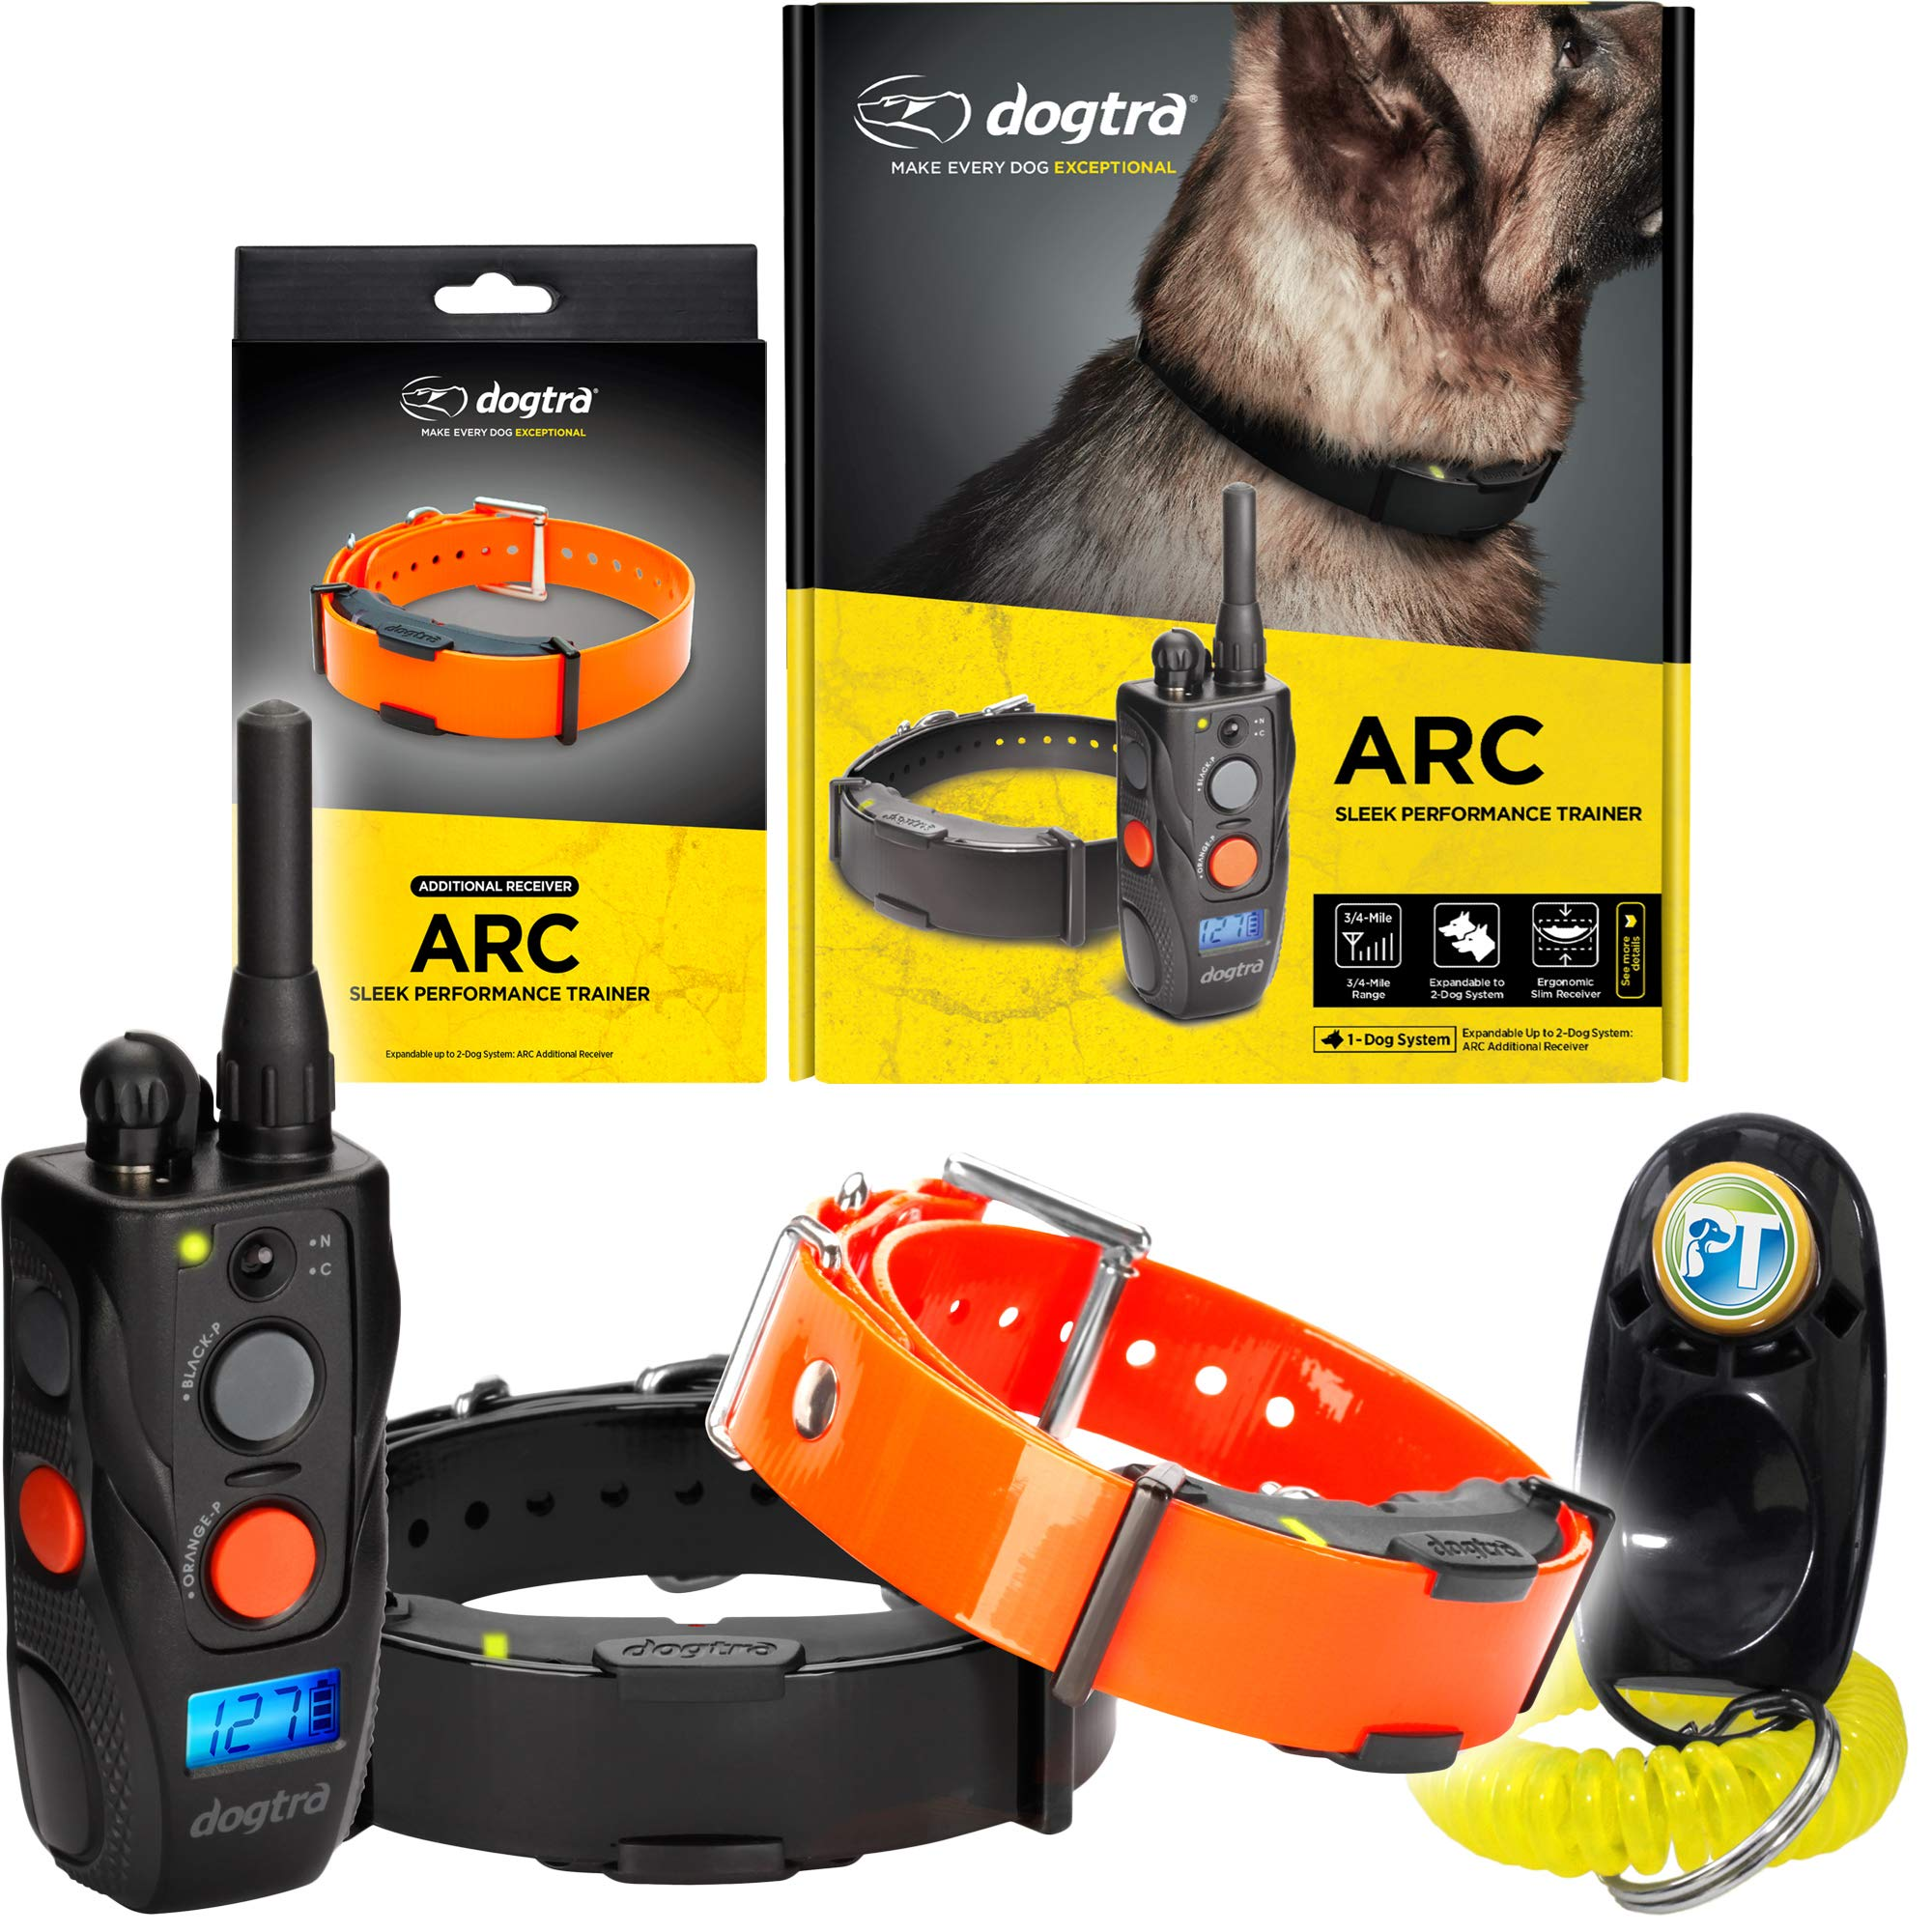 Dogtra ARC Two Dogs Remote Training Collar - 3/4 Mile Range, Waterproof, Rechargeable, Shock, Vibration - Includes PetsTEK Dog Training Clicker